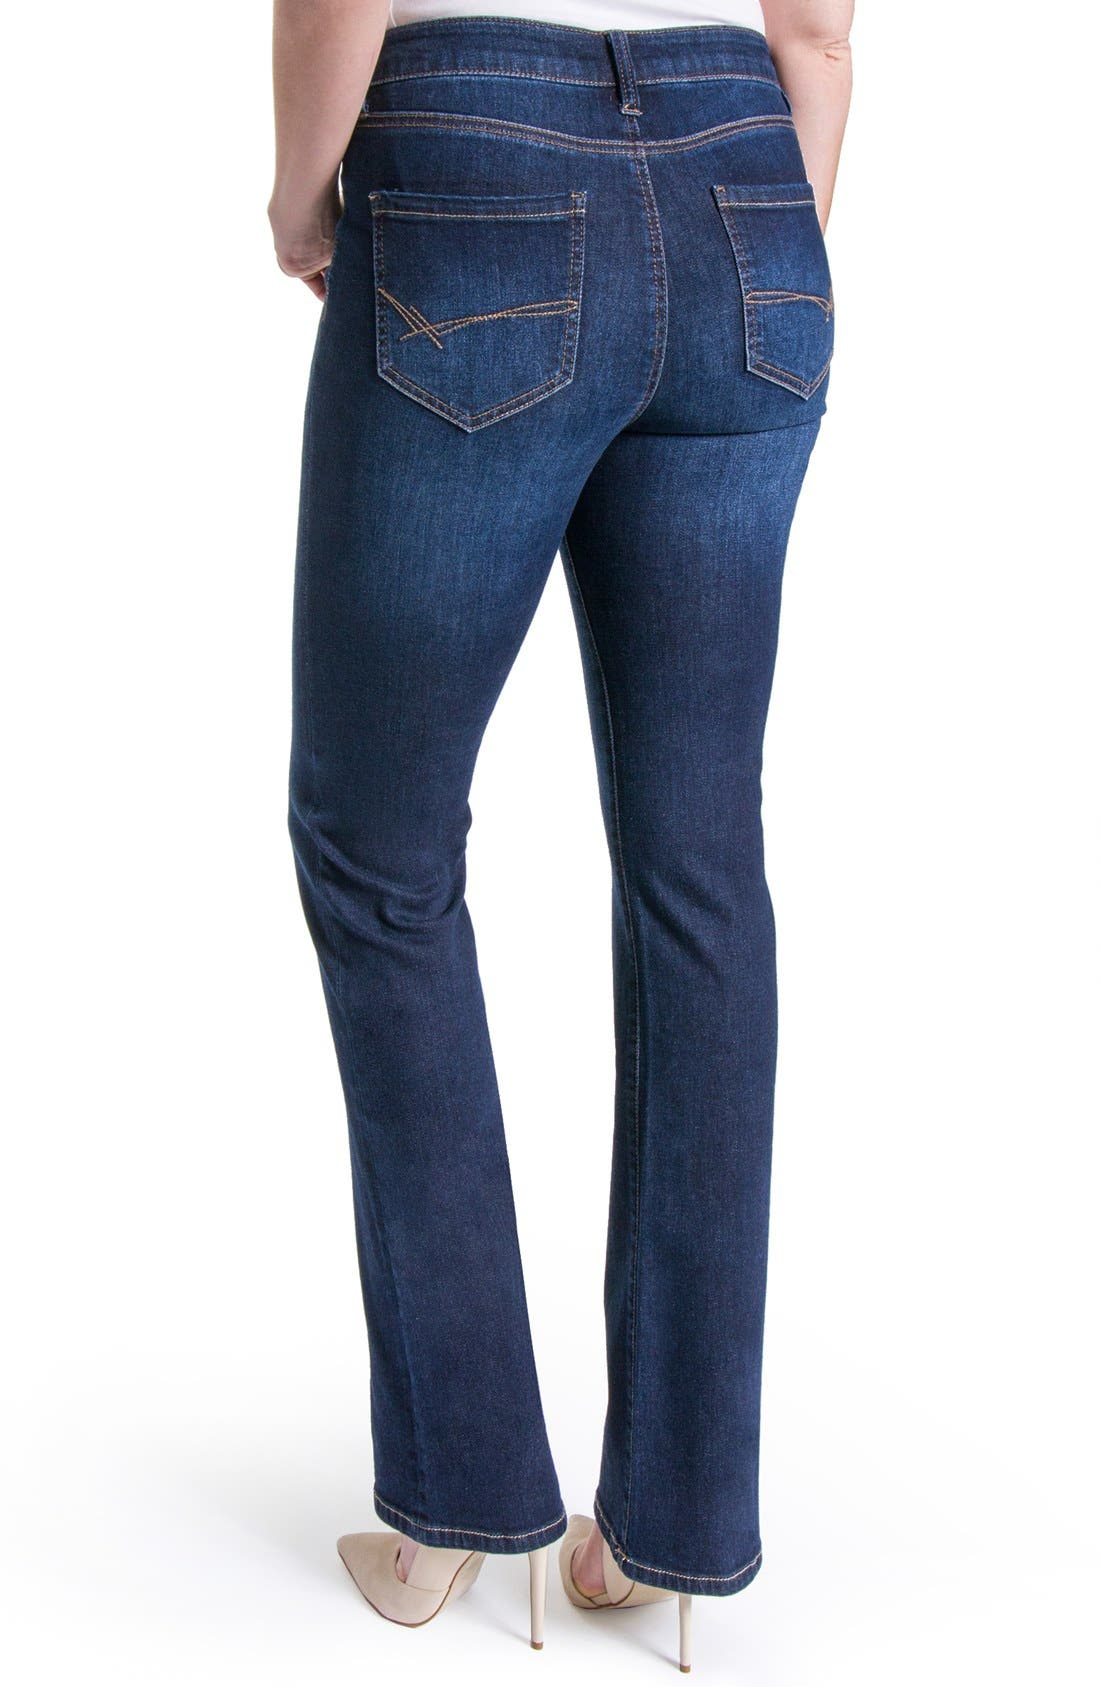 Alternate Image 4  - Liverpool Jeans Company 'Lucy' Stretch Bootcut Jeans (Vintage Super Dark) (Regular & Petite)